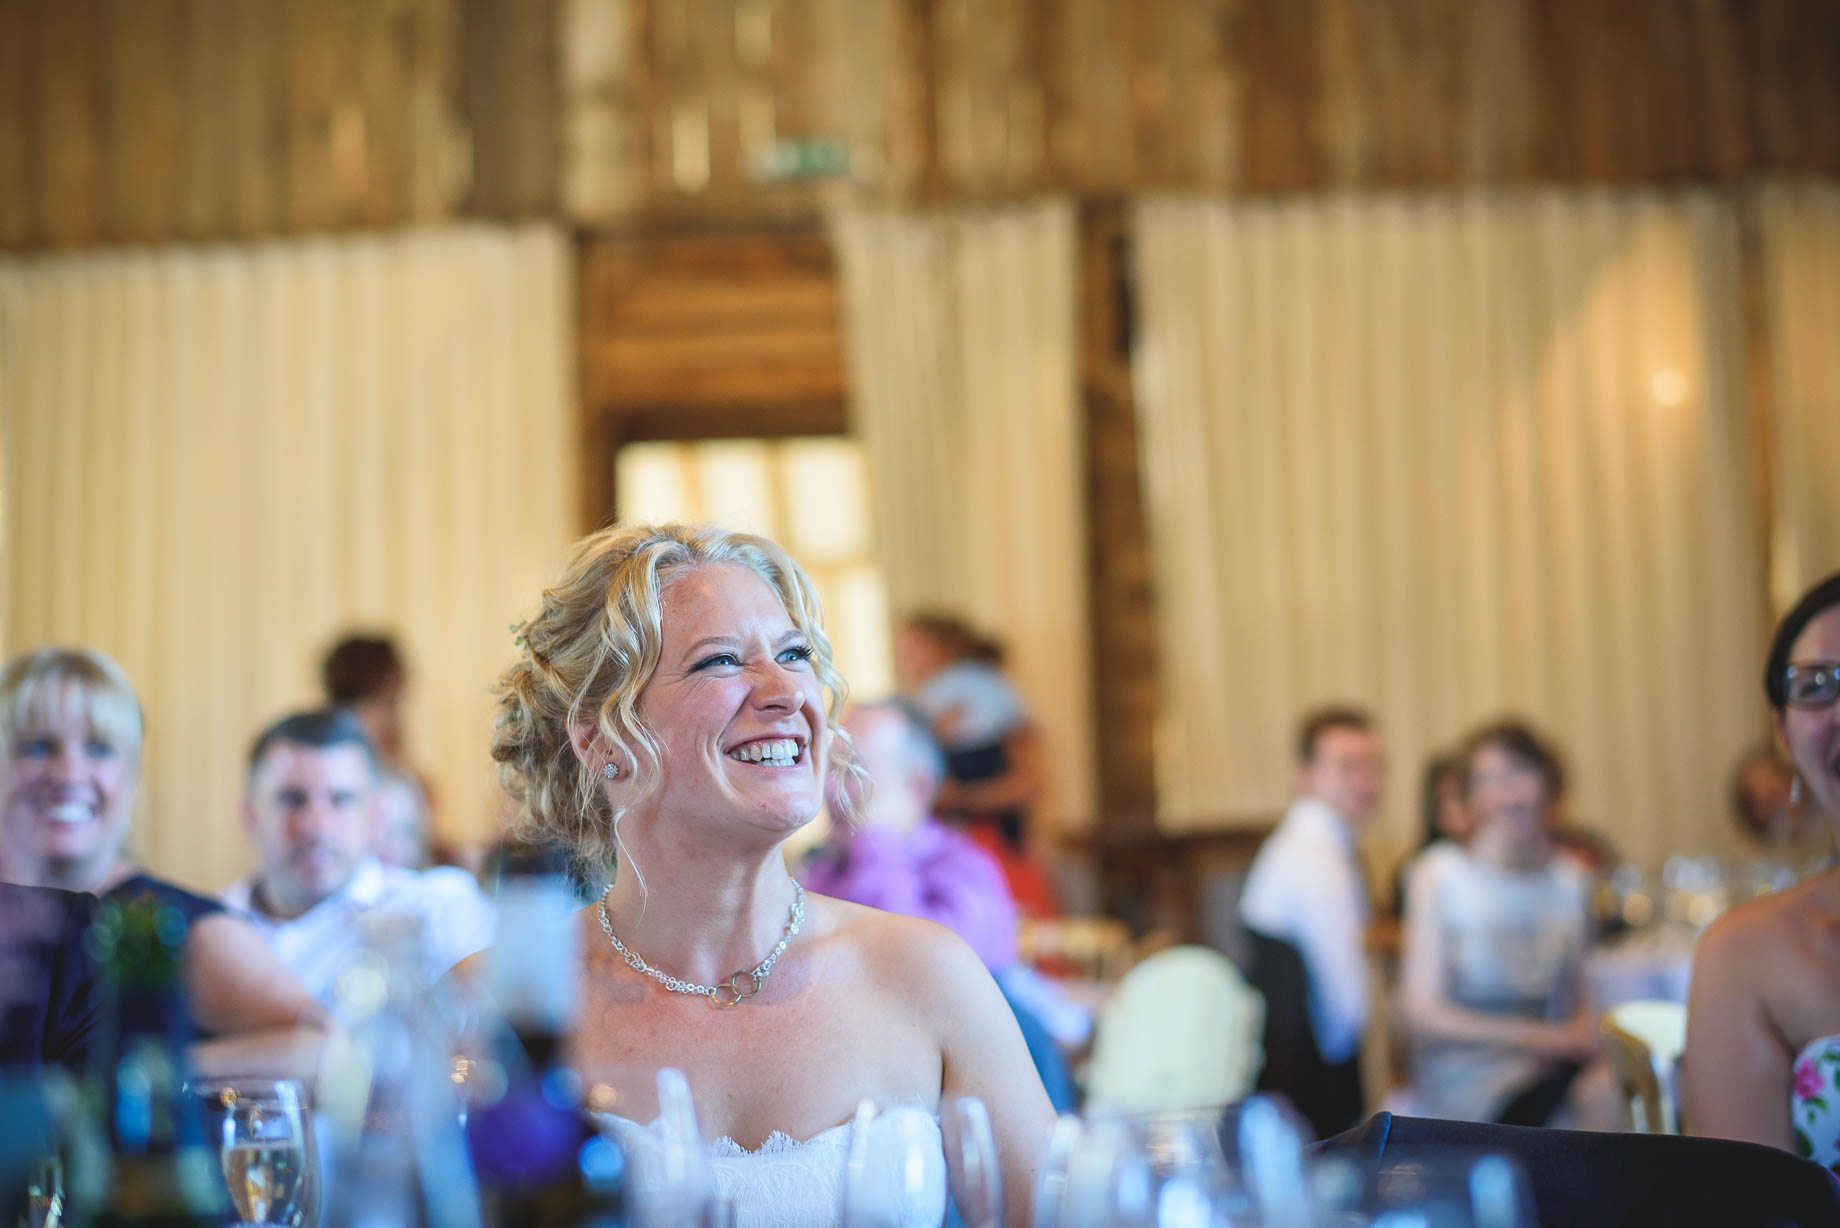 Clock Barn wedding photography by Guy Collier Photography- Rebecca and Dom (141 of 198)